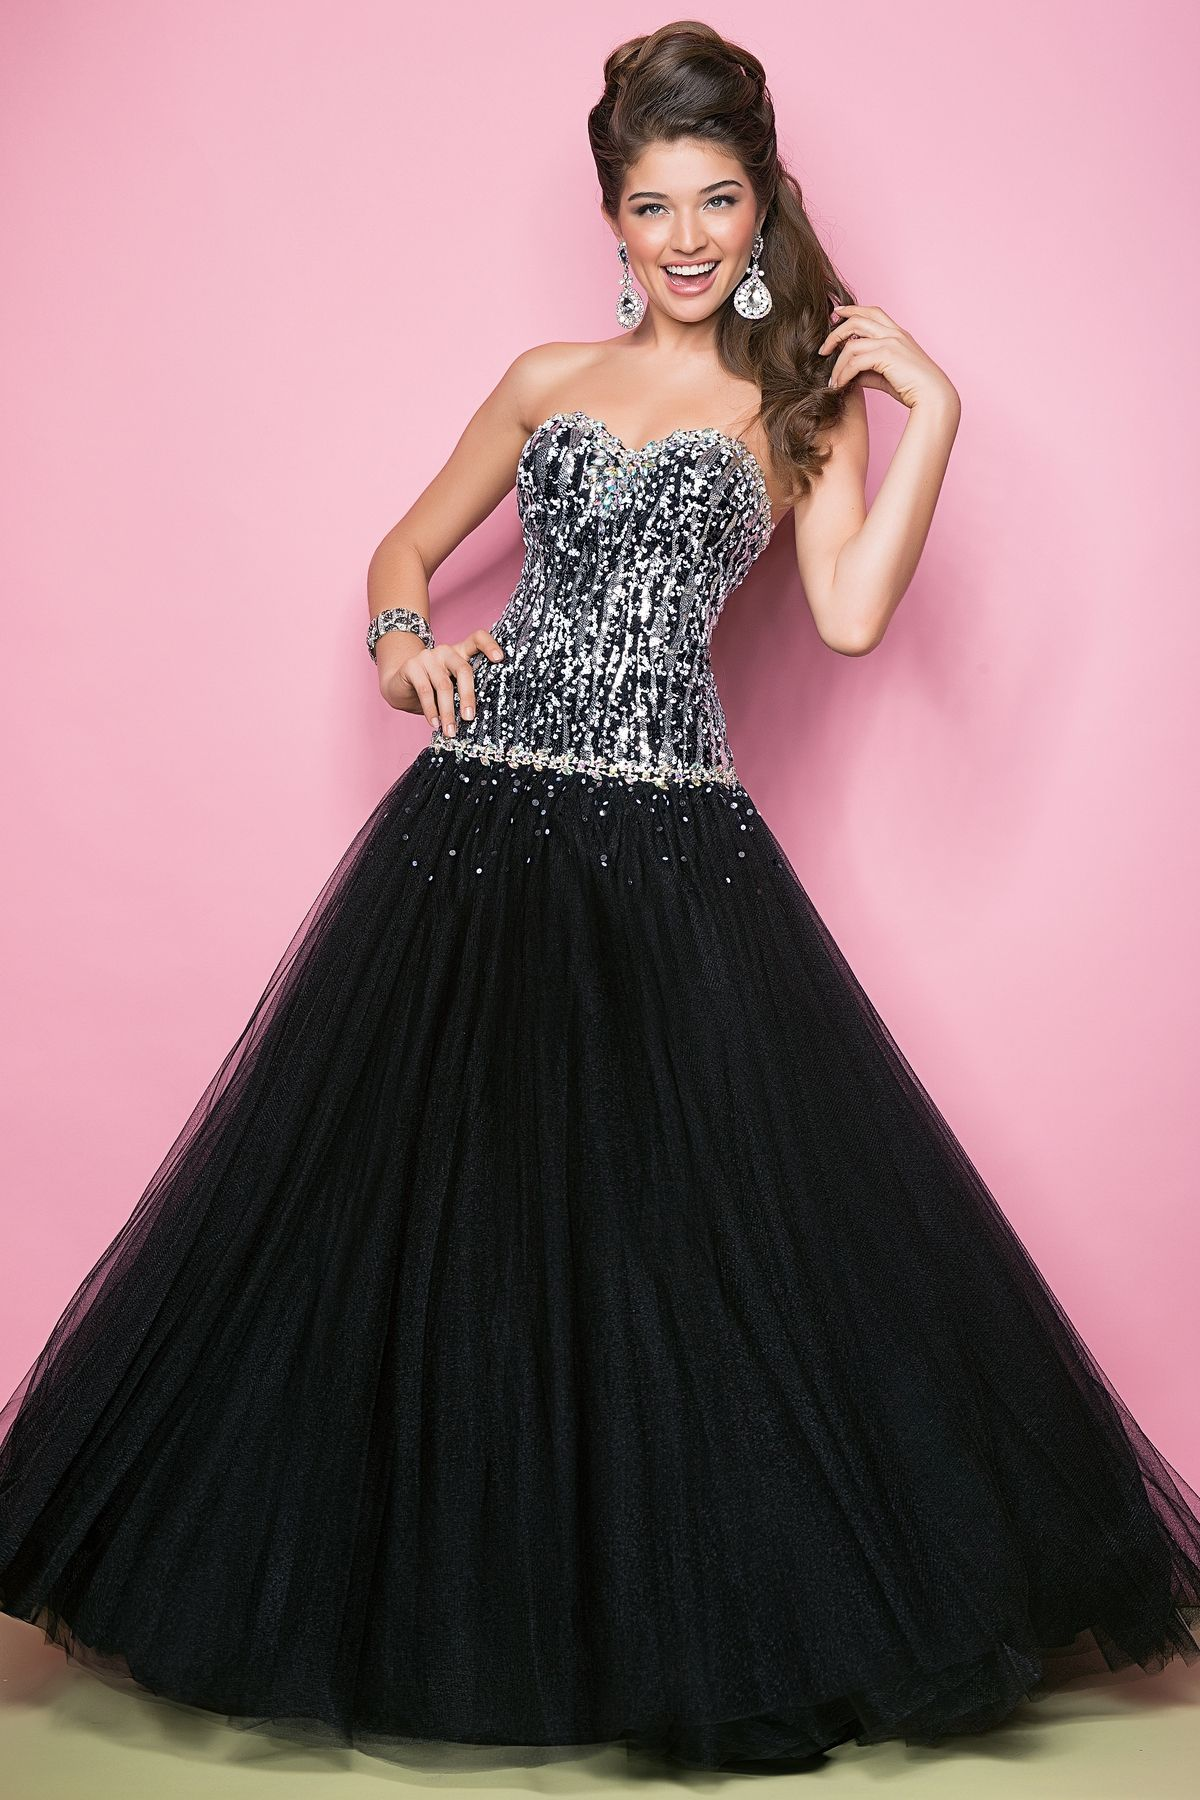 size 0 prom dresses cheap